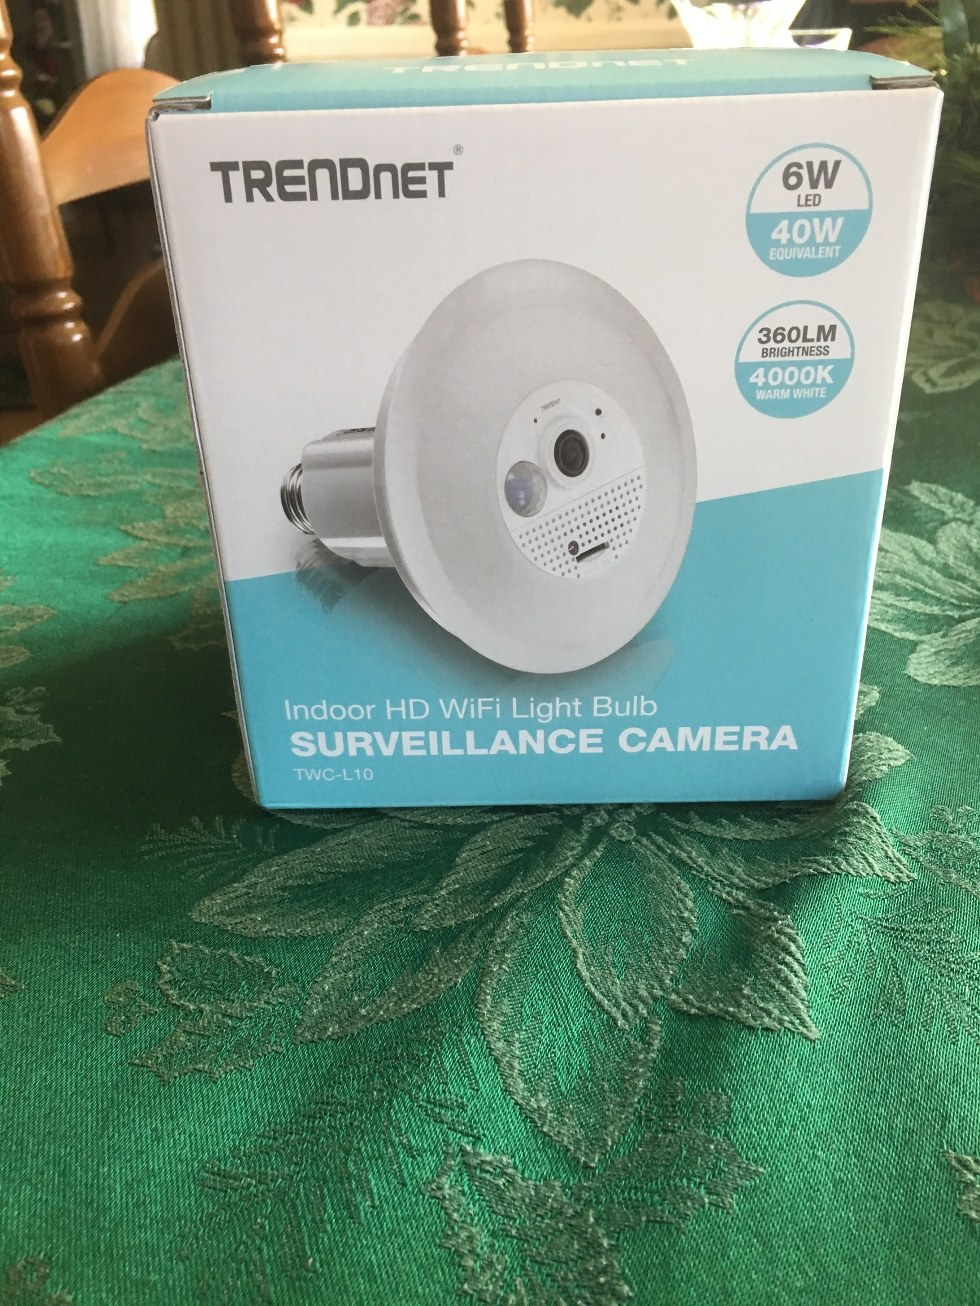 TRENDnet's new Indoor HD Wi-Fi Smart Light Bulb Surveillance Camera